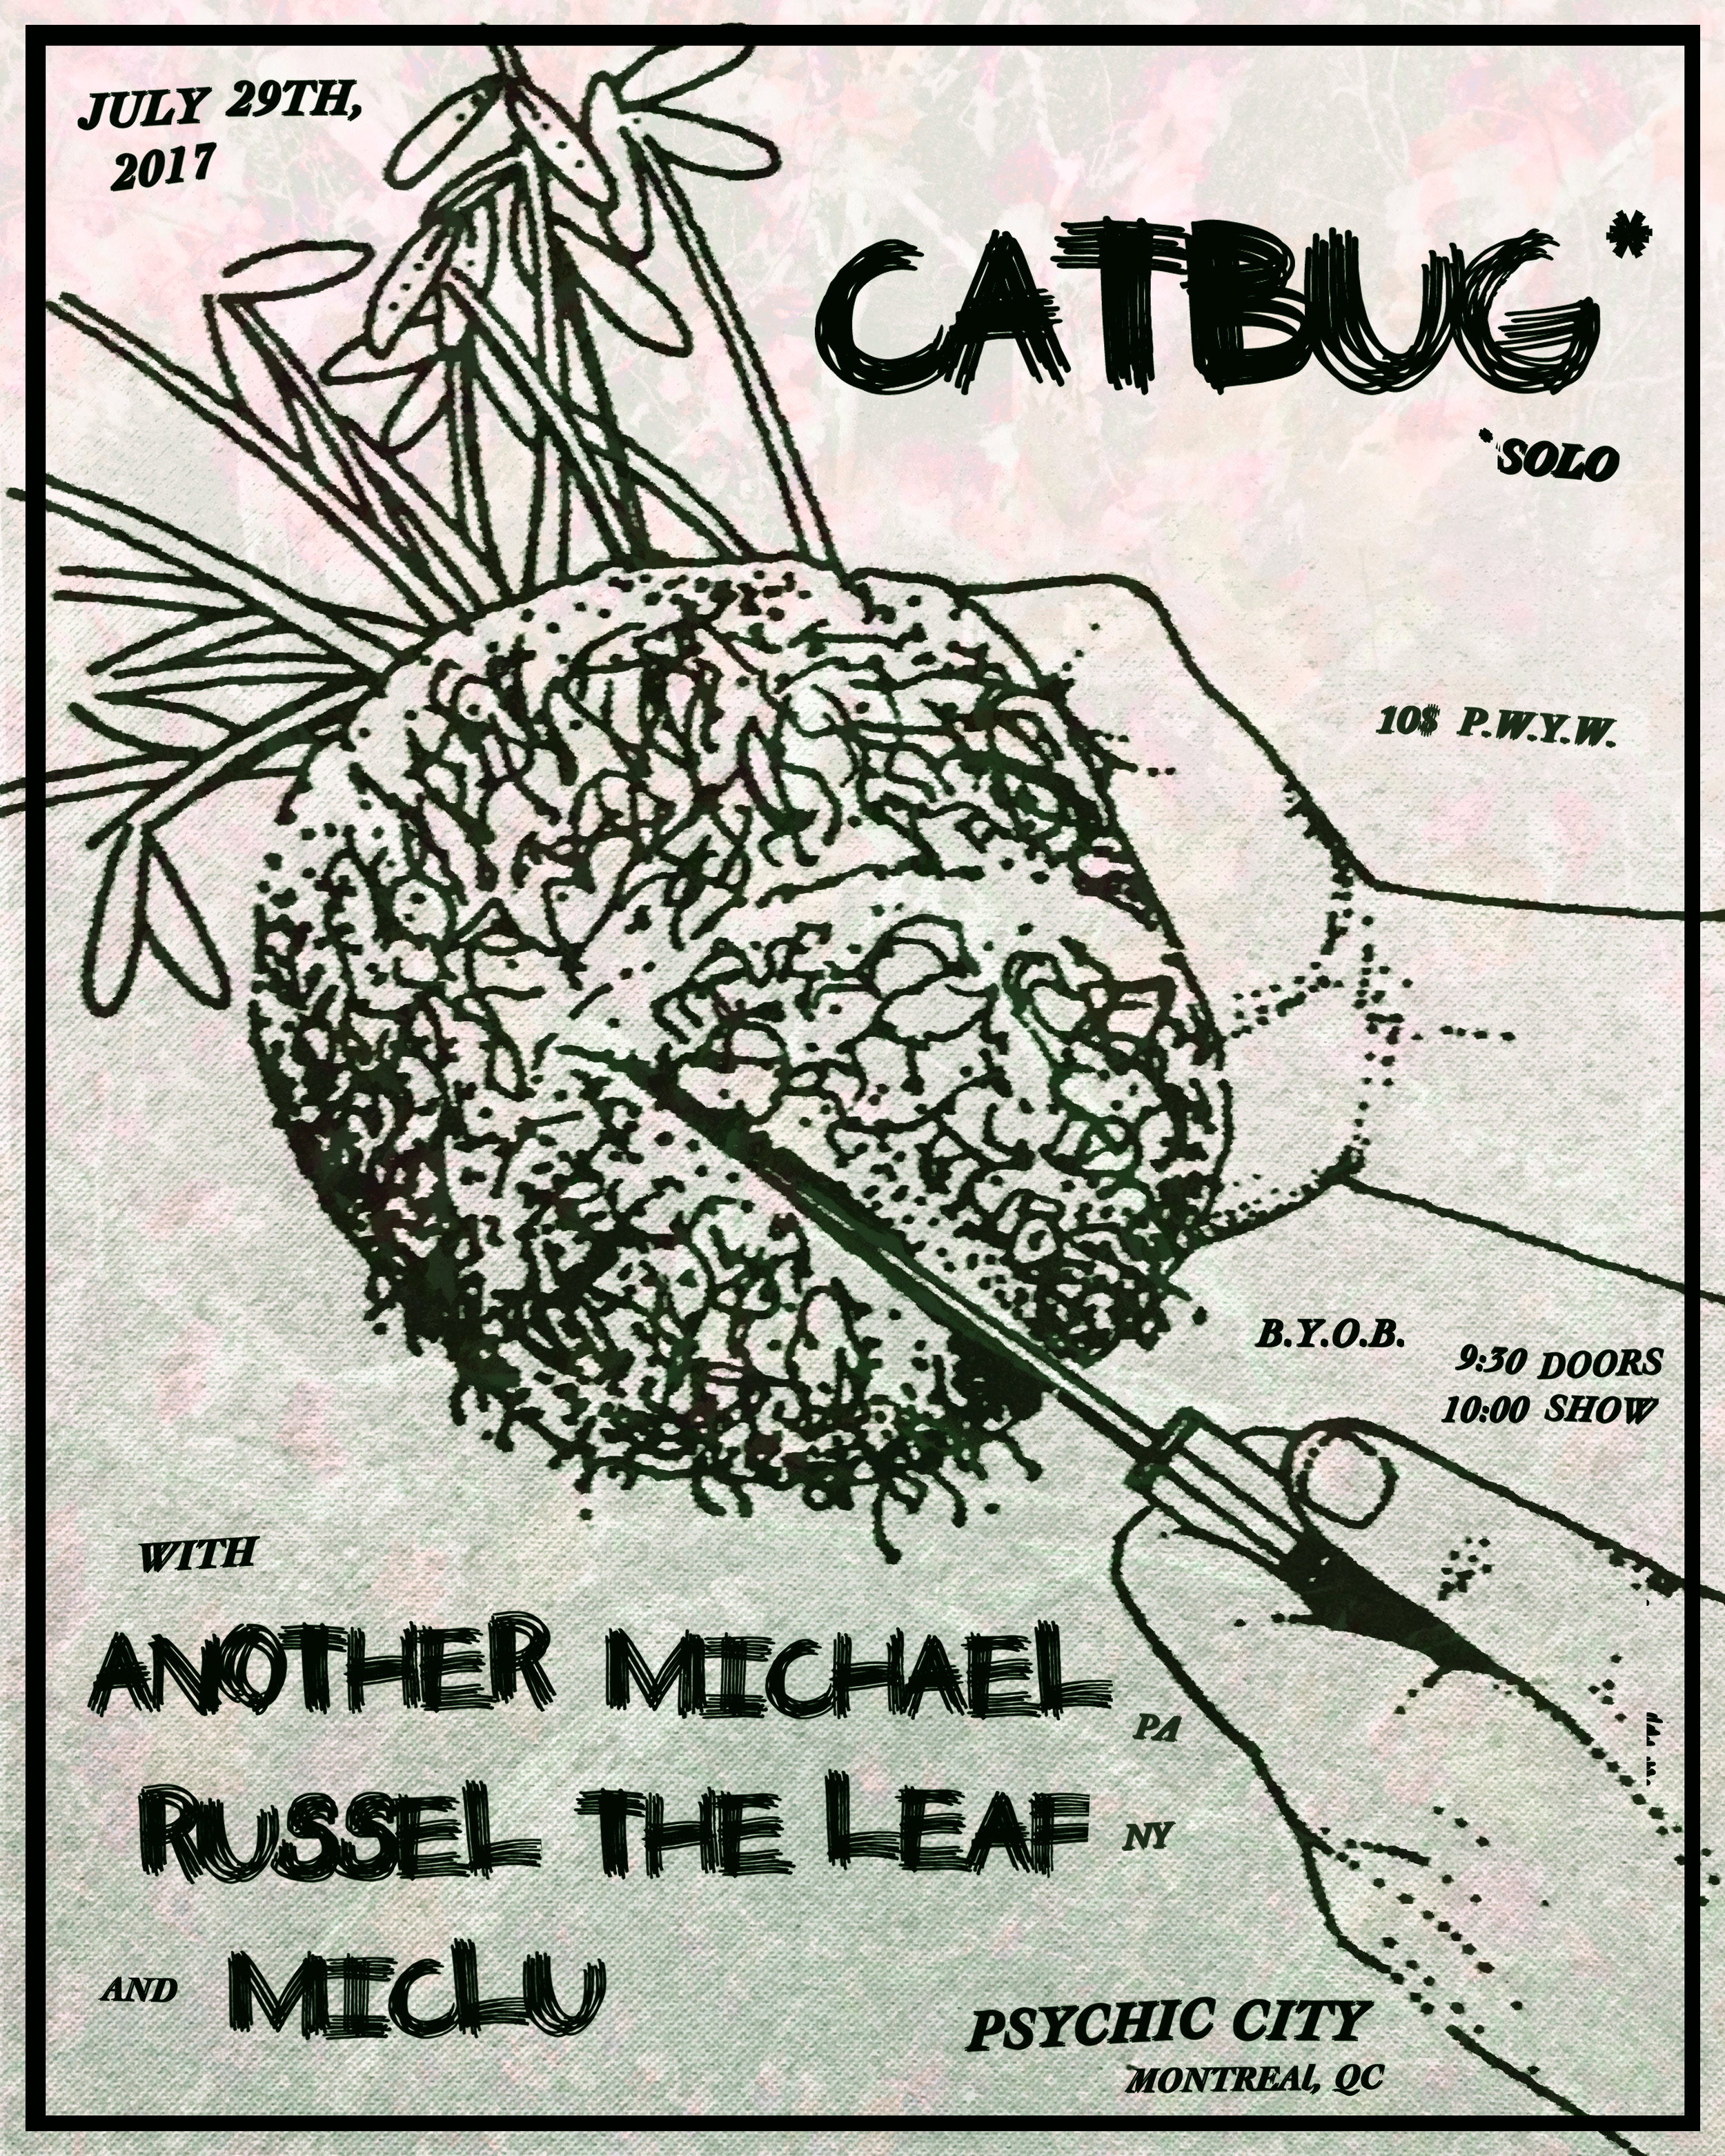 Flyer-Catbug729-RusselFixed copy.jpg